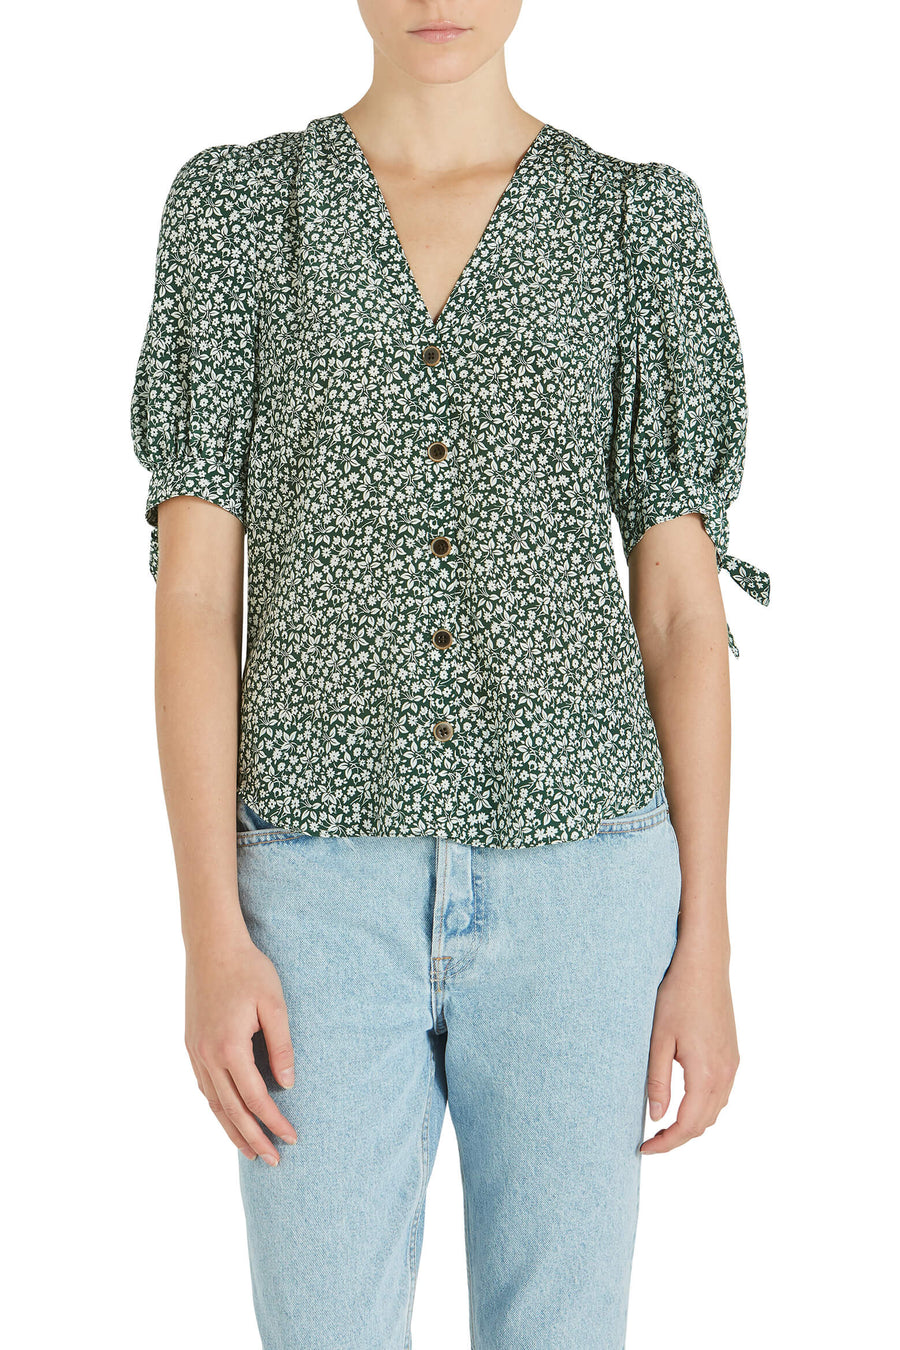 Veronica Beard Gizela Blouse from The New Trend